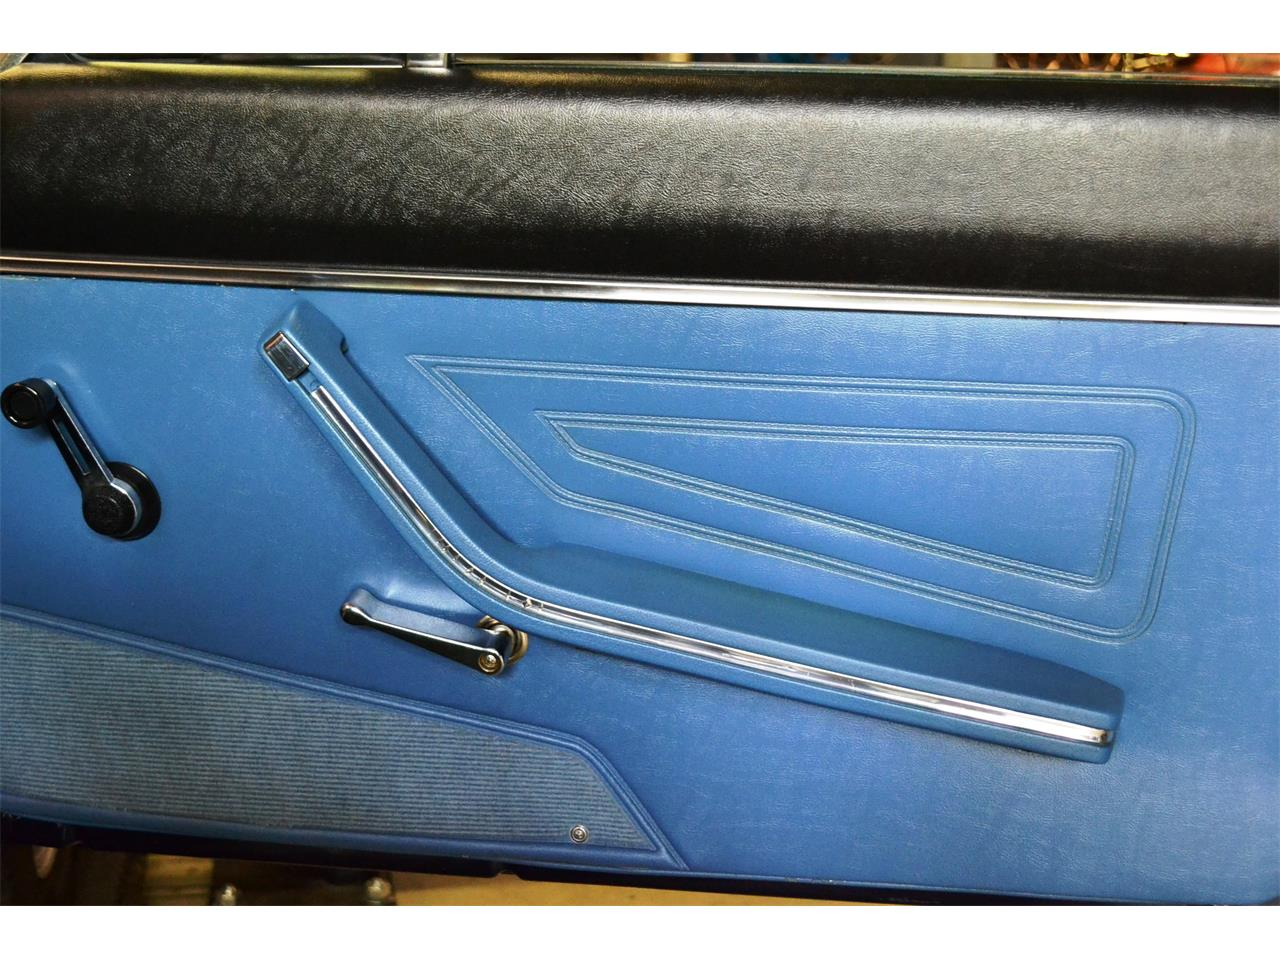 1981 Fiat Spider for sale in Barrington, IL – photo 31